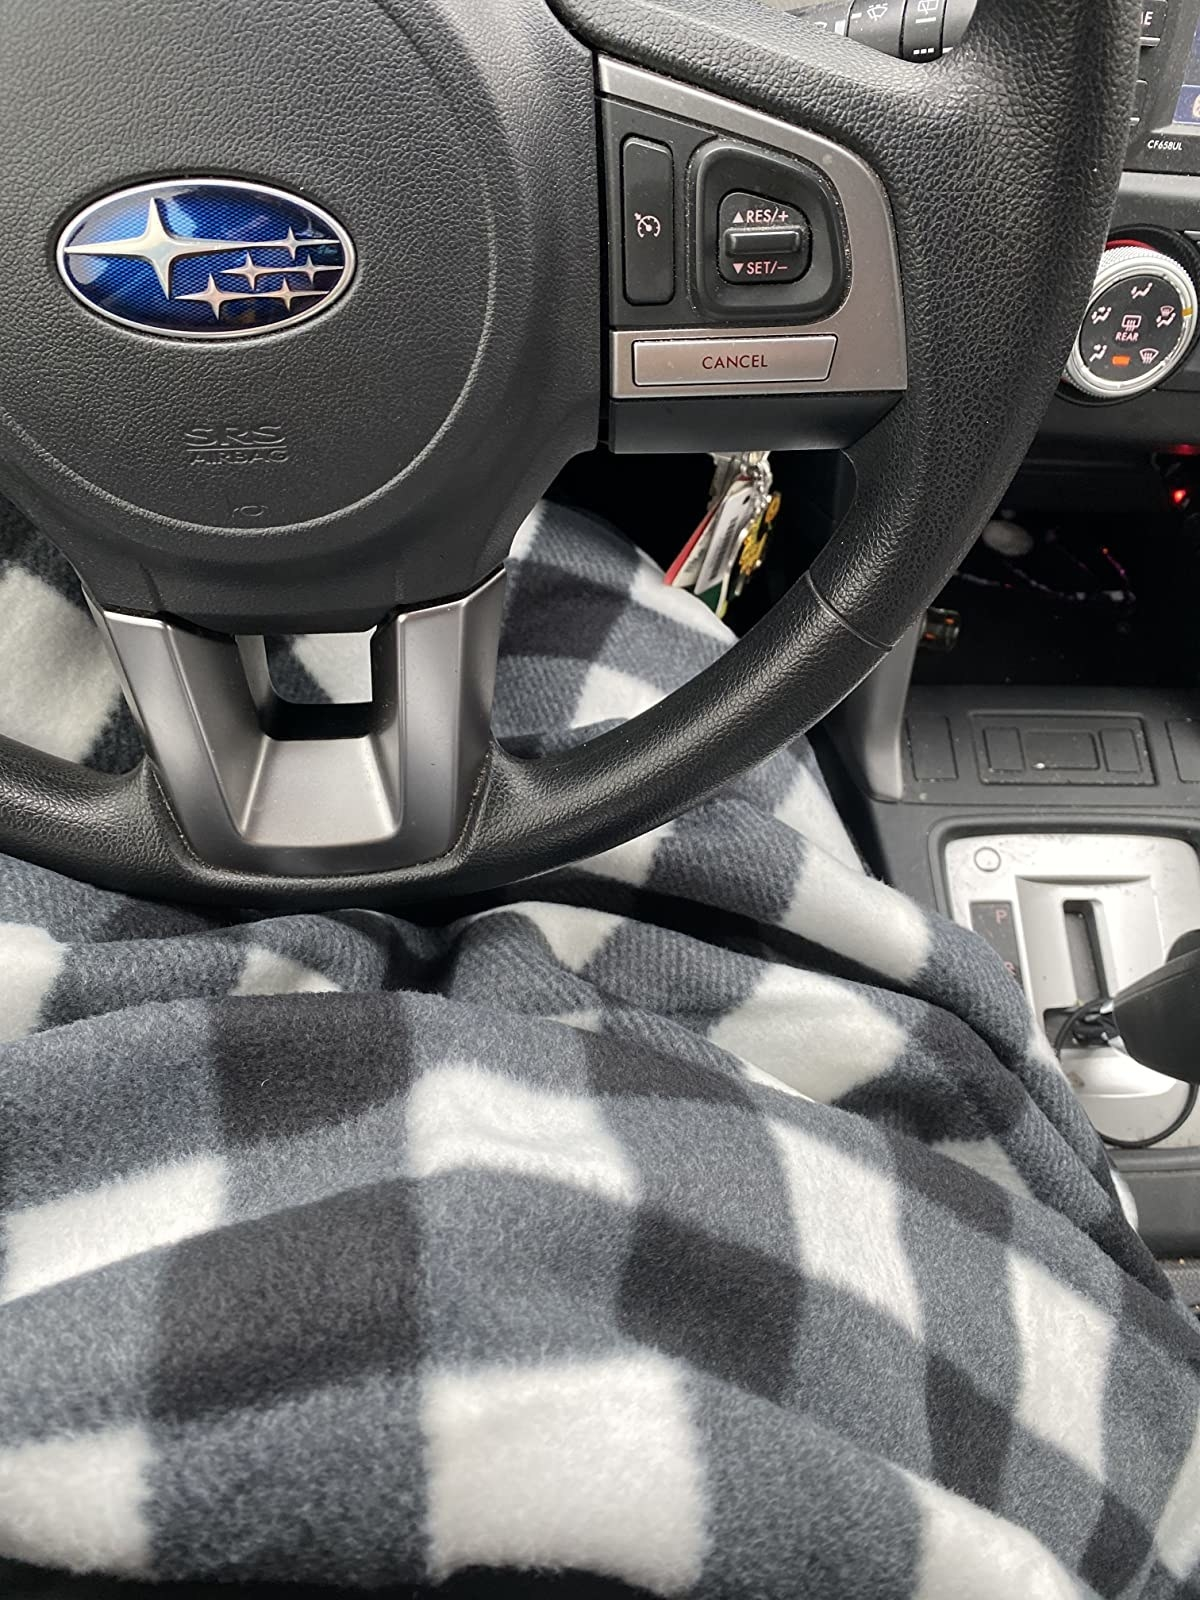 the checkered blanket on a lap in a car